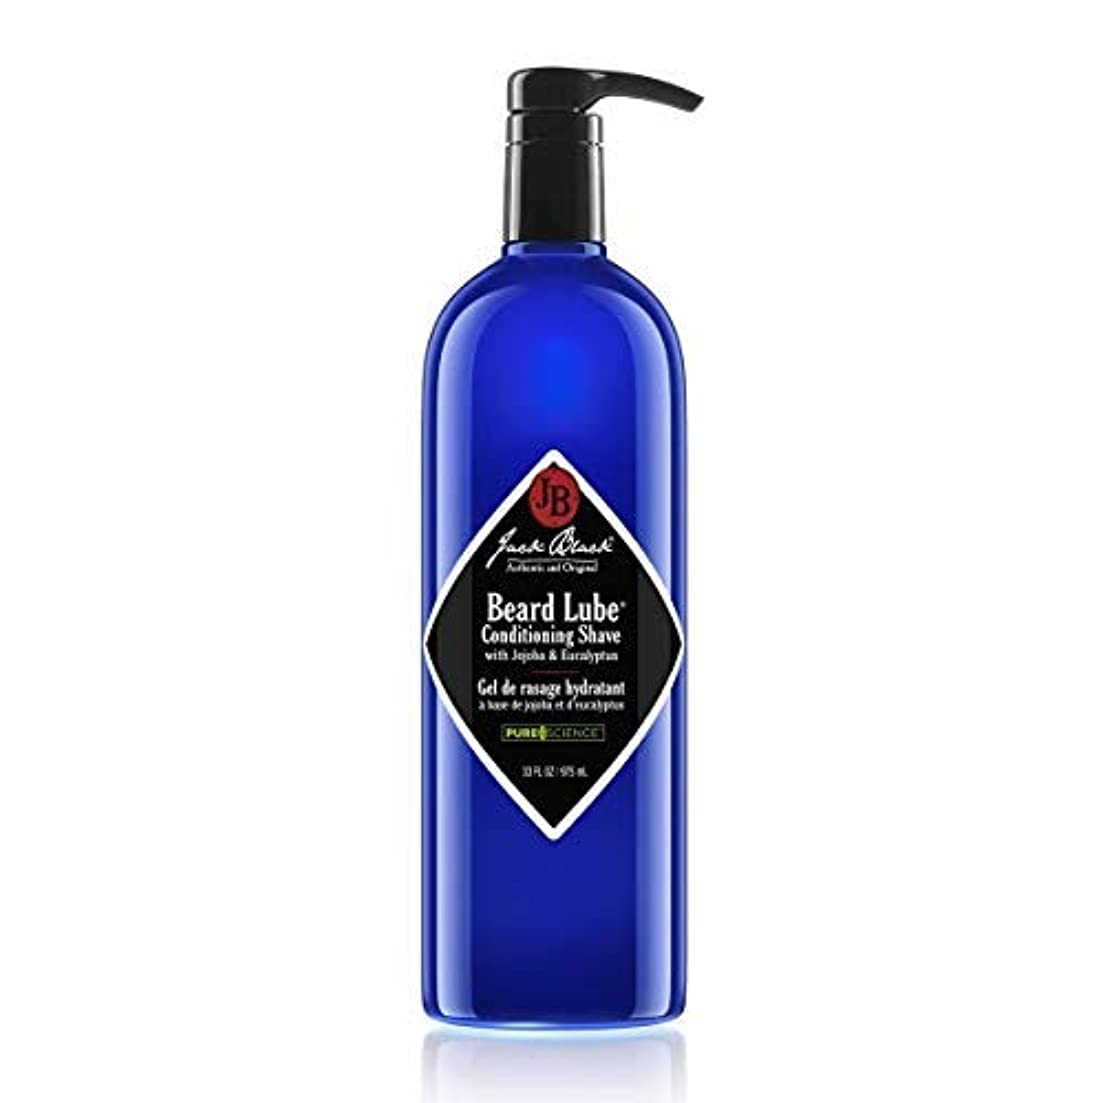 成熟初期のスリムJack Black Beard Lube Conditioning Shave 33 fl. oz. [並行輸入品]